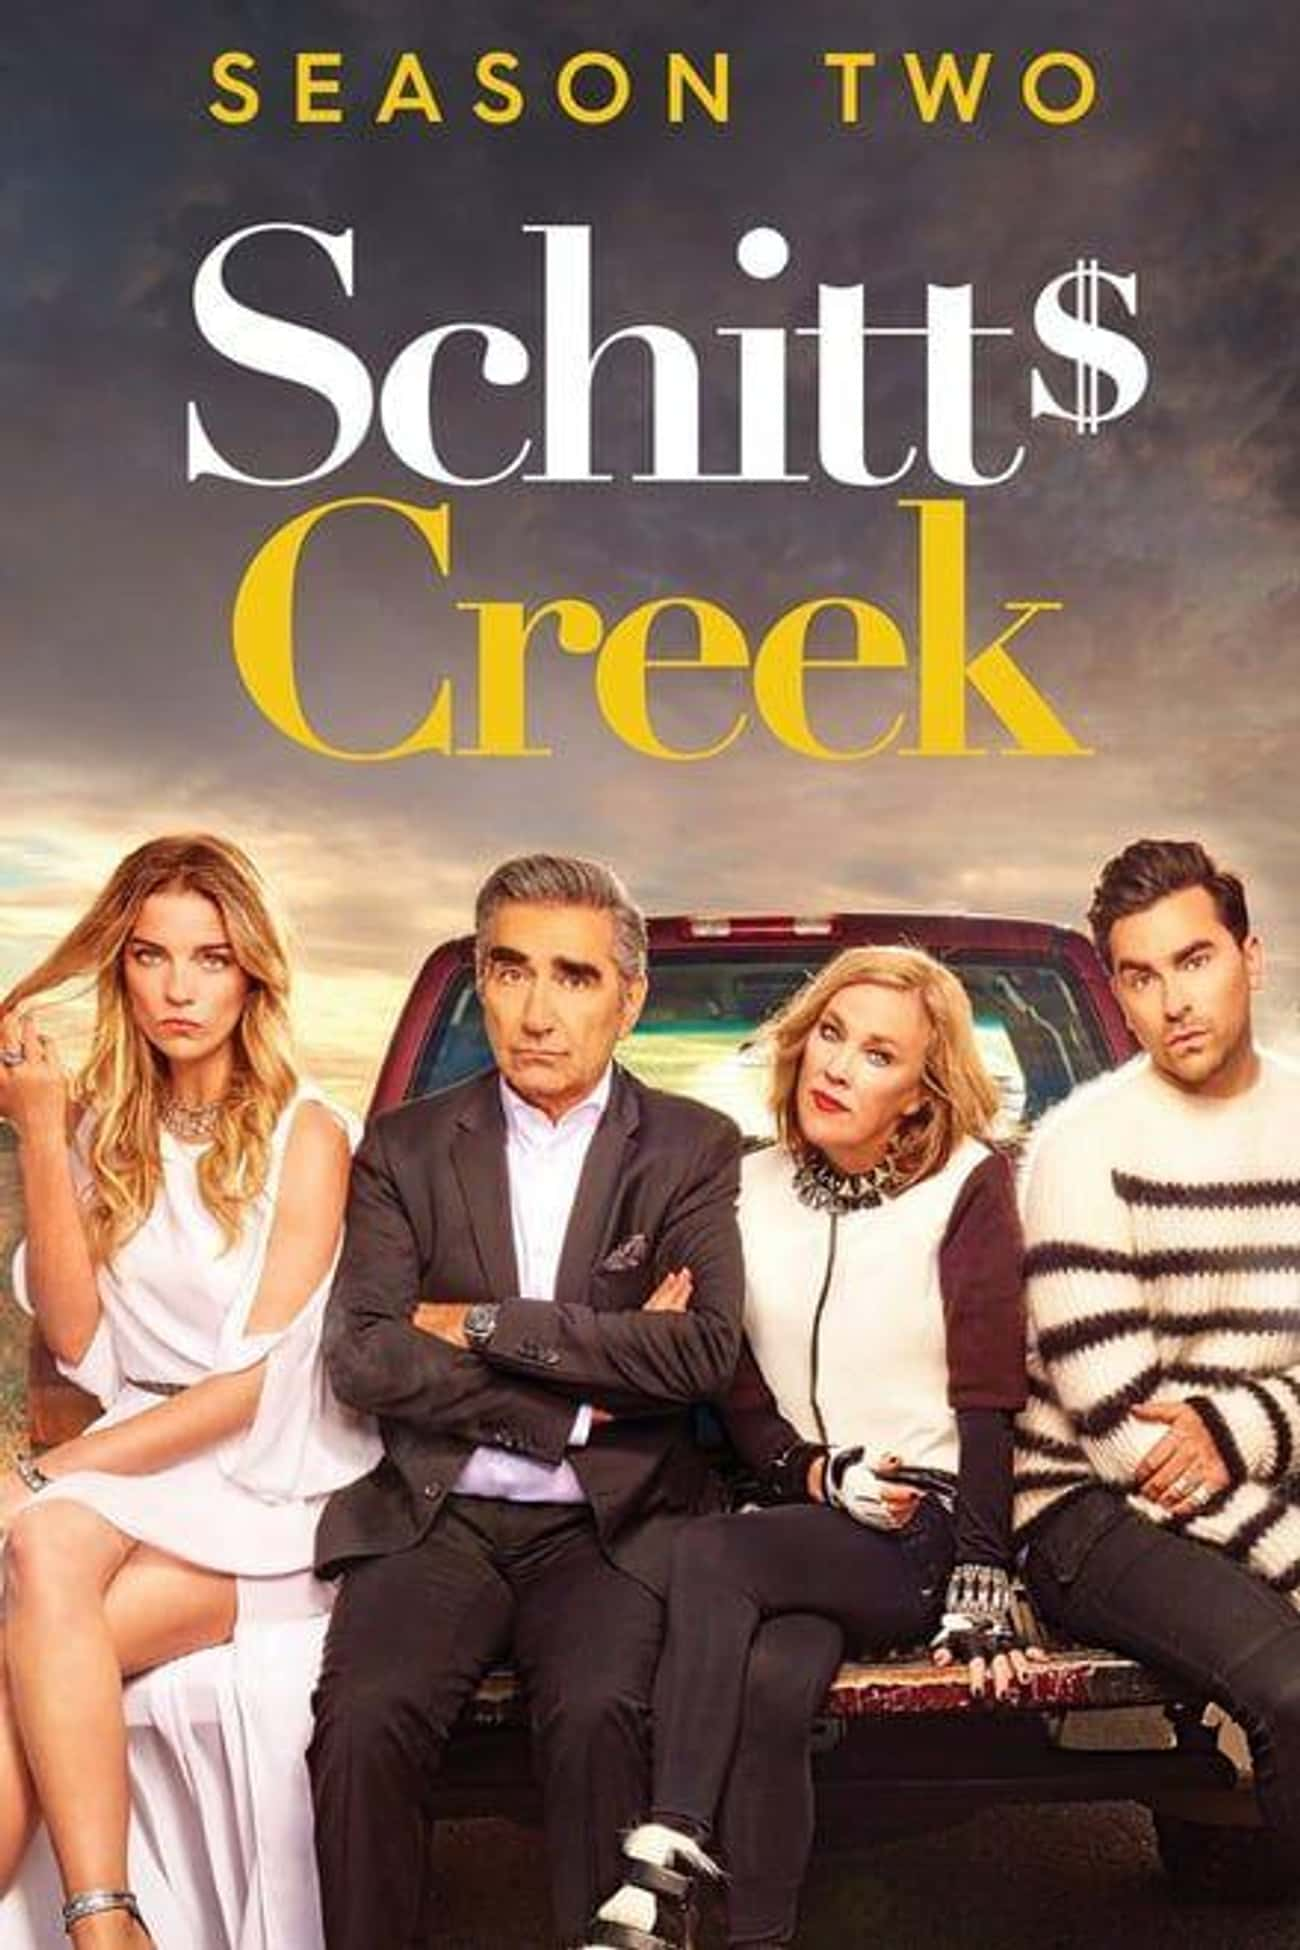 Schitt's Creek - Season 2 is listed (or ranked) 1 on the list Ranking the Best Seasons Of 'Schitt's Creek'